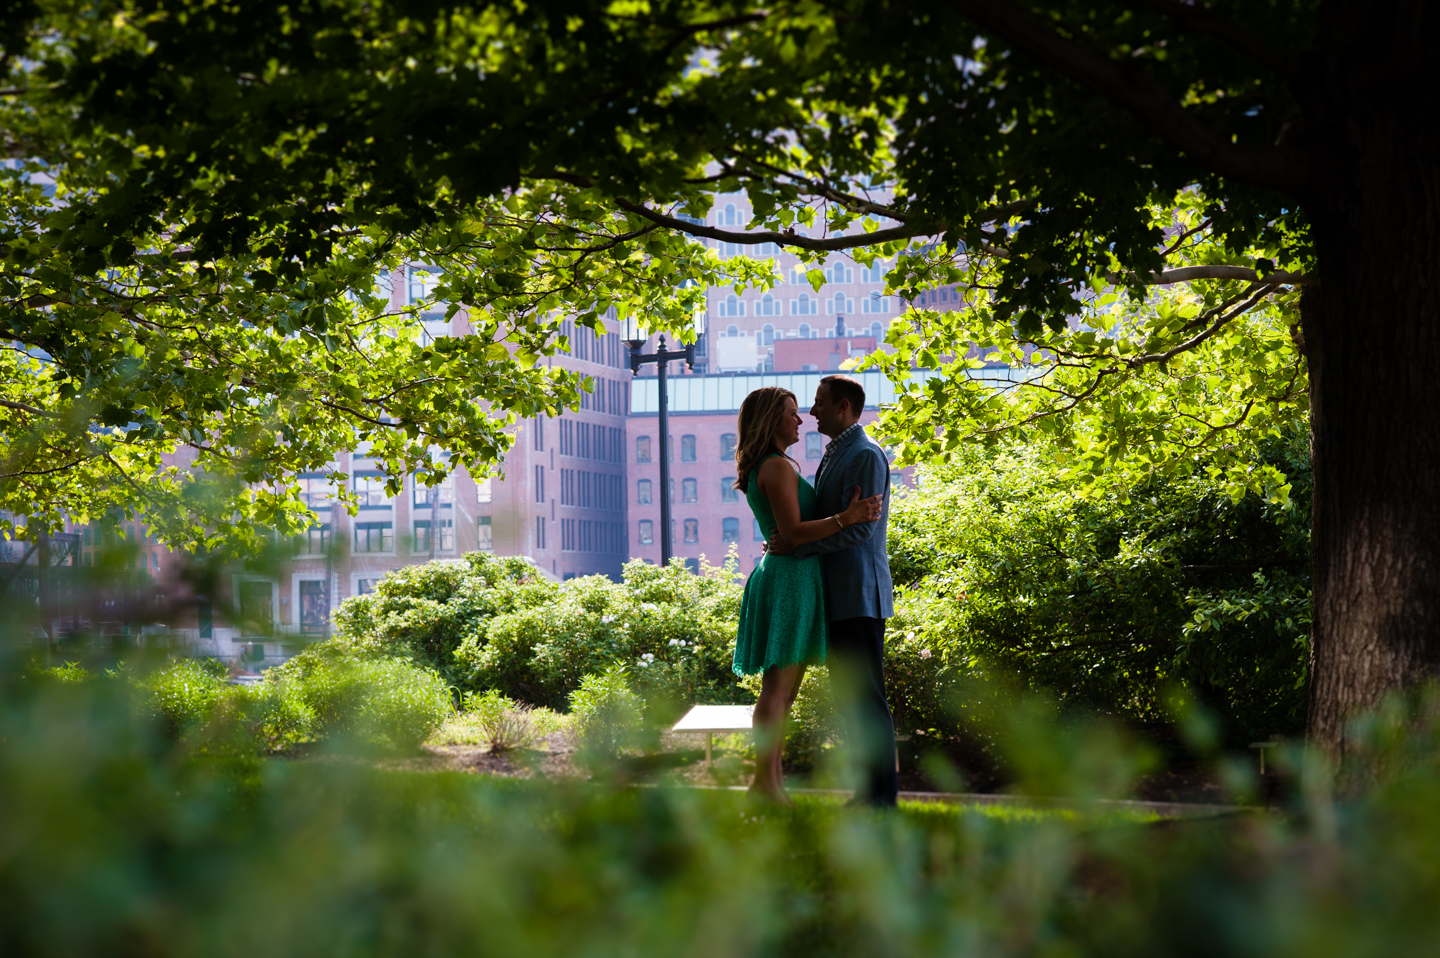 Silhouette of engaged couple under trees